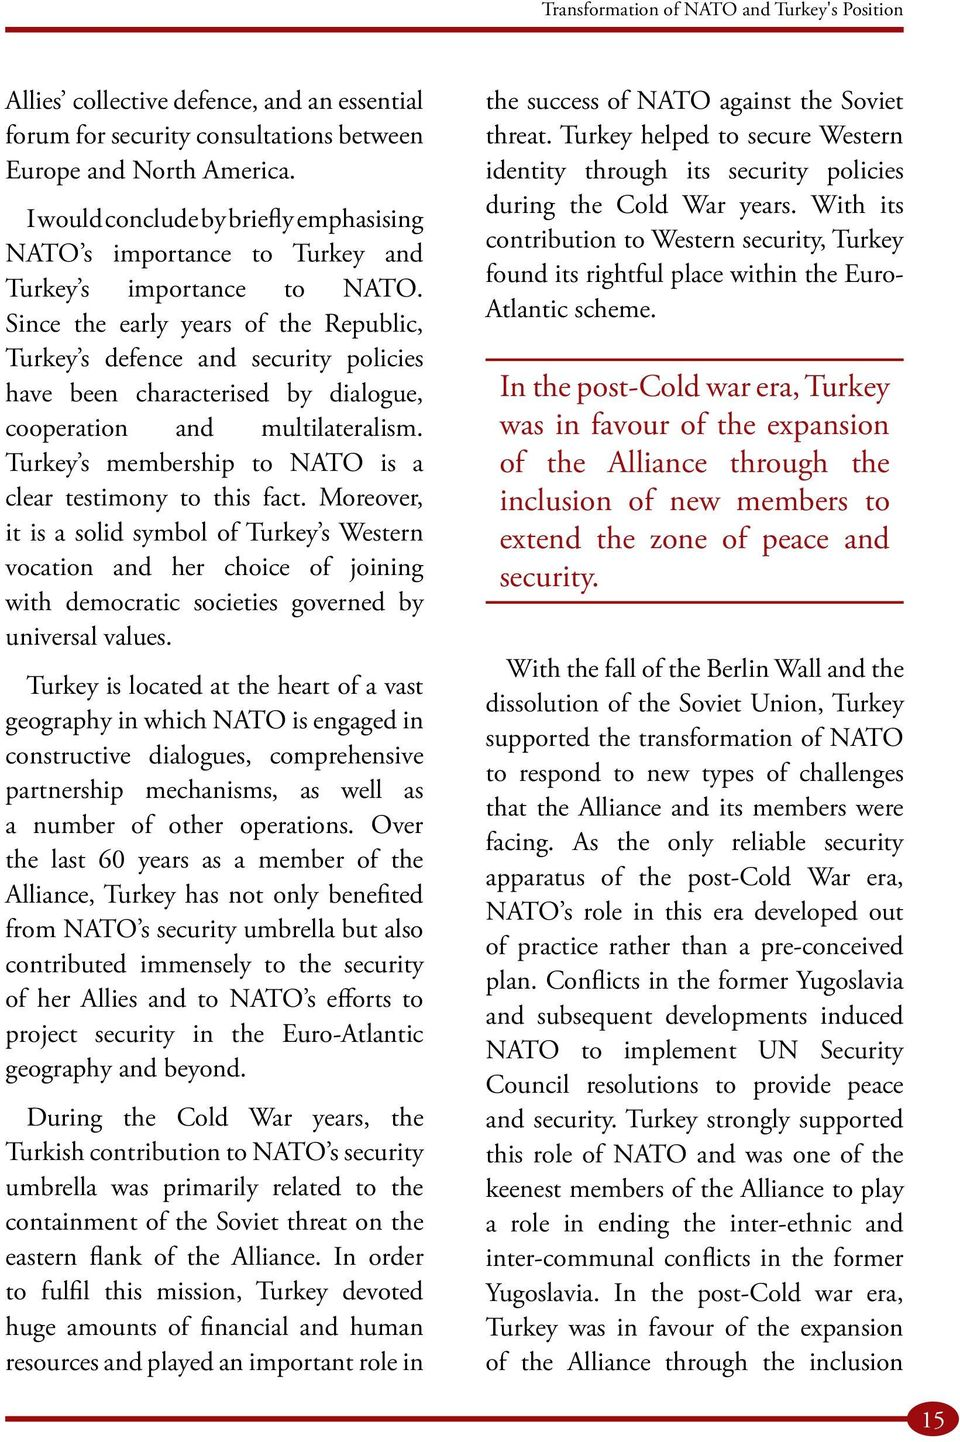 Since the early years of the Republic, Turkey s defence and security policies have been characterised by dialogue, cooperation and multilateralism.